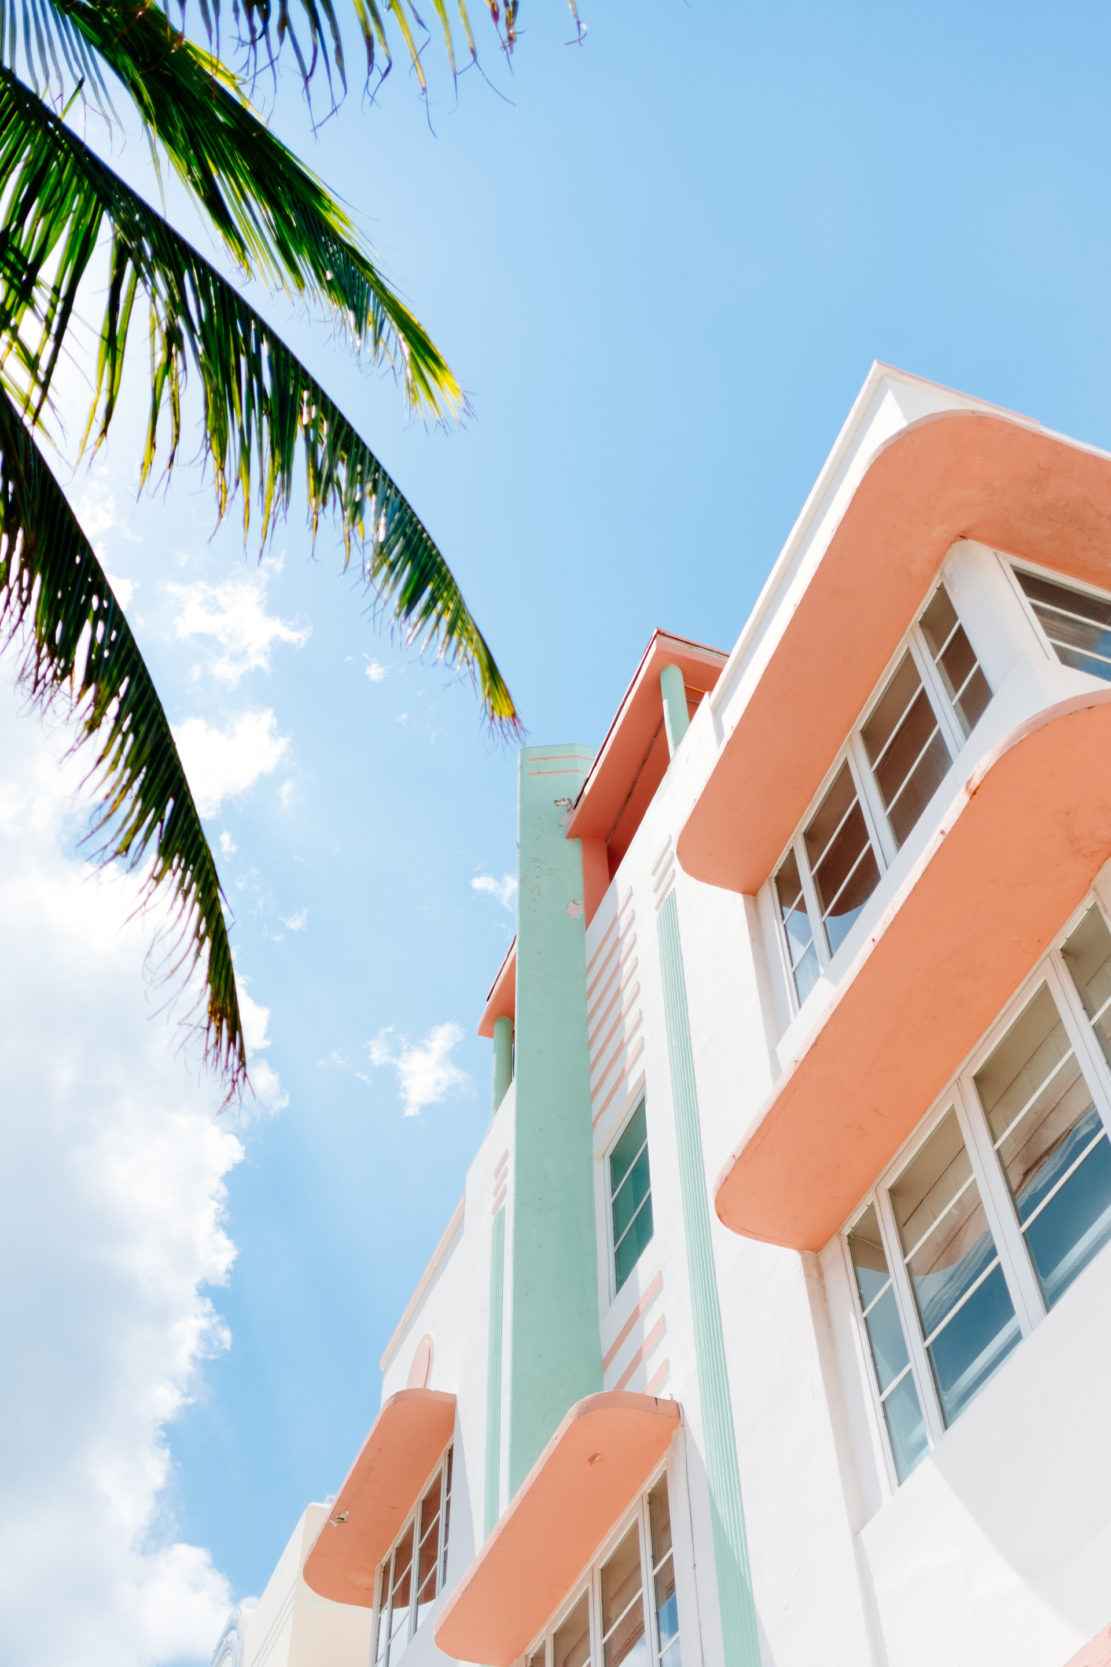 Coral, Mint Green and White Building Next to Palm Tree